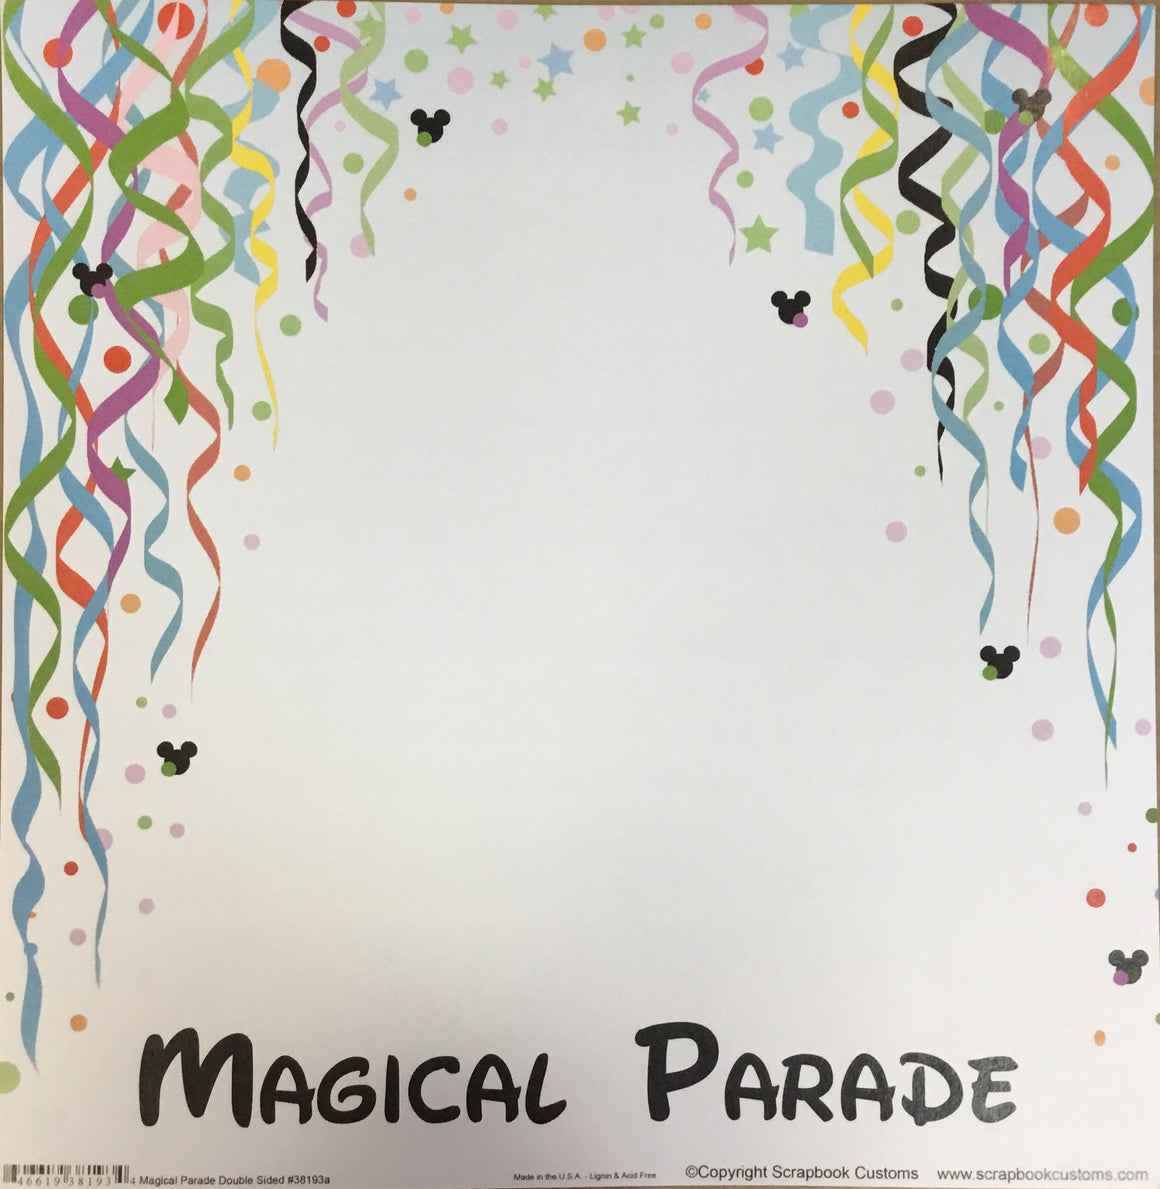 Magical Parade 12x12 single sheet